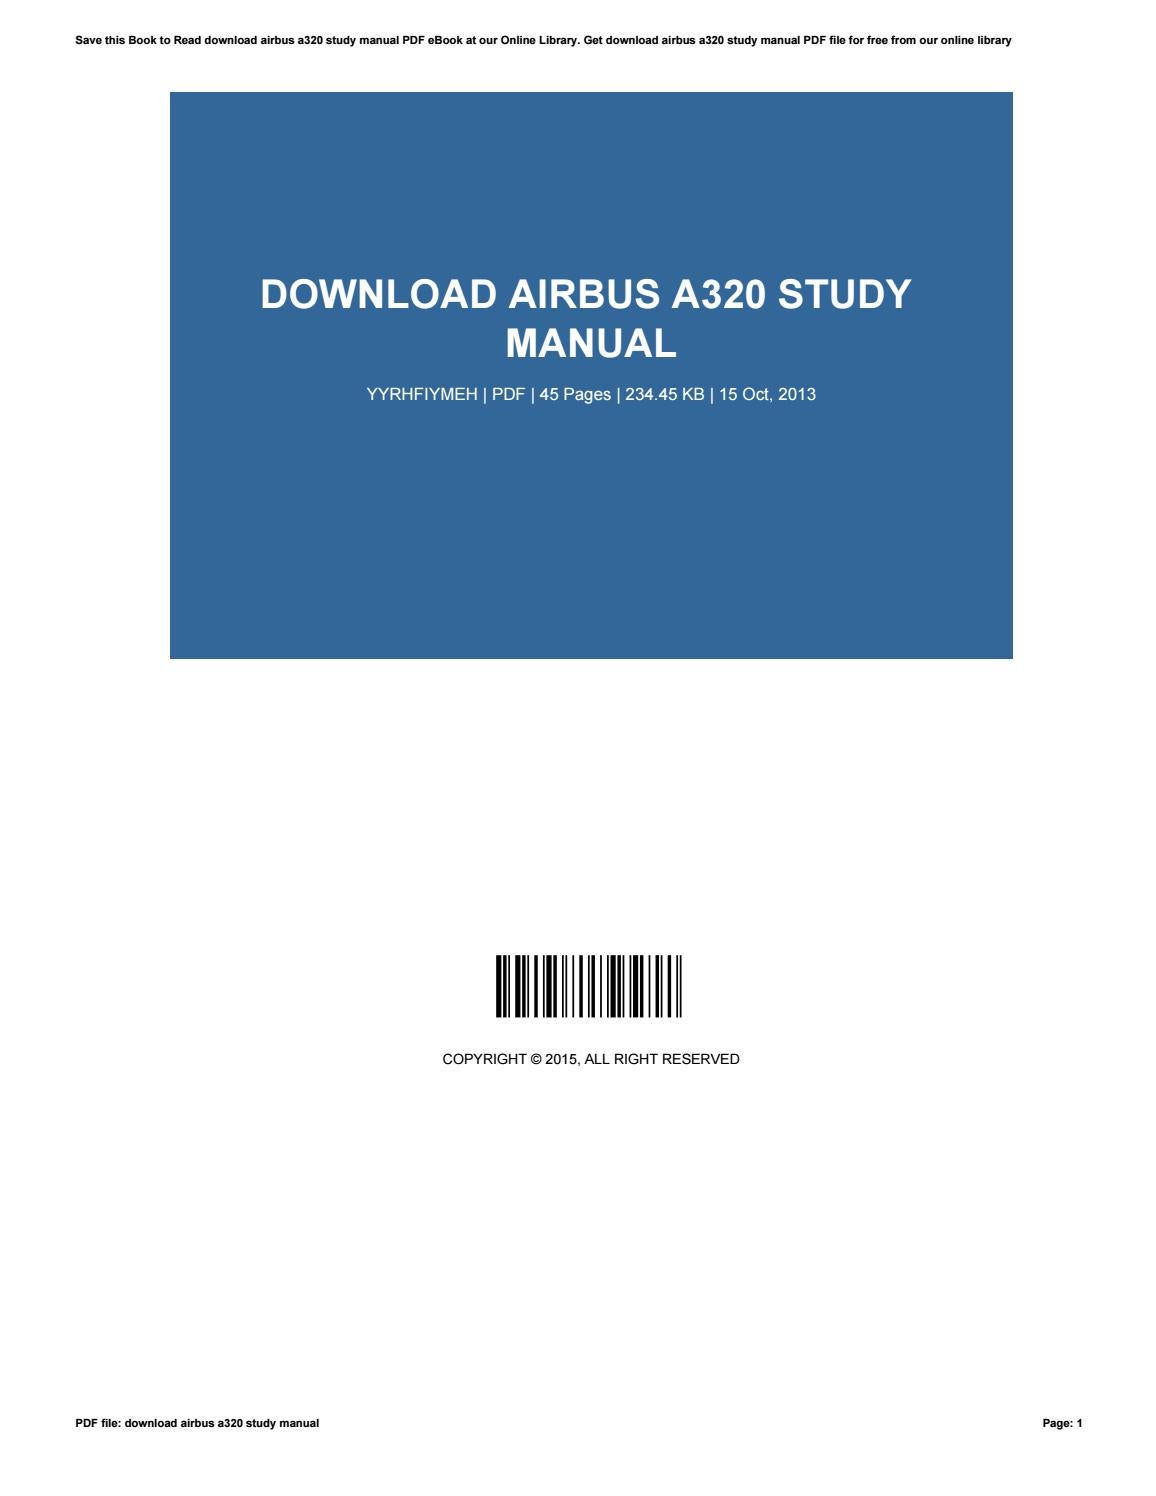 Download airbus a320 study manual by JohnRobertson19561 - issuu